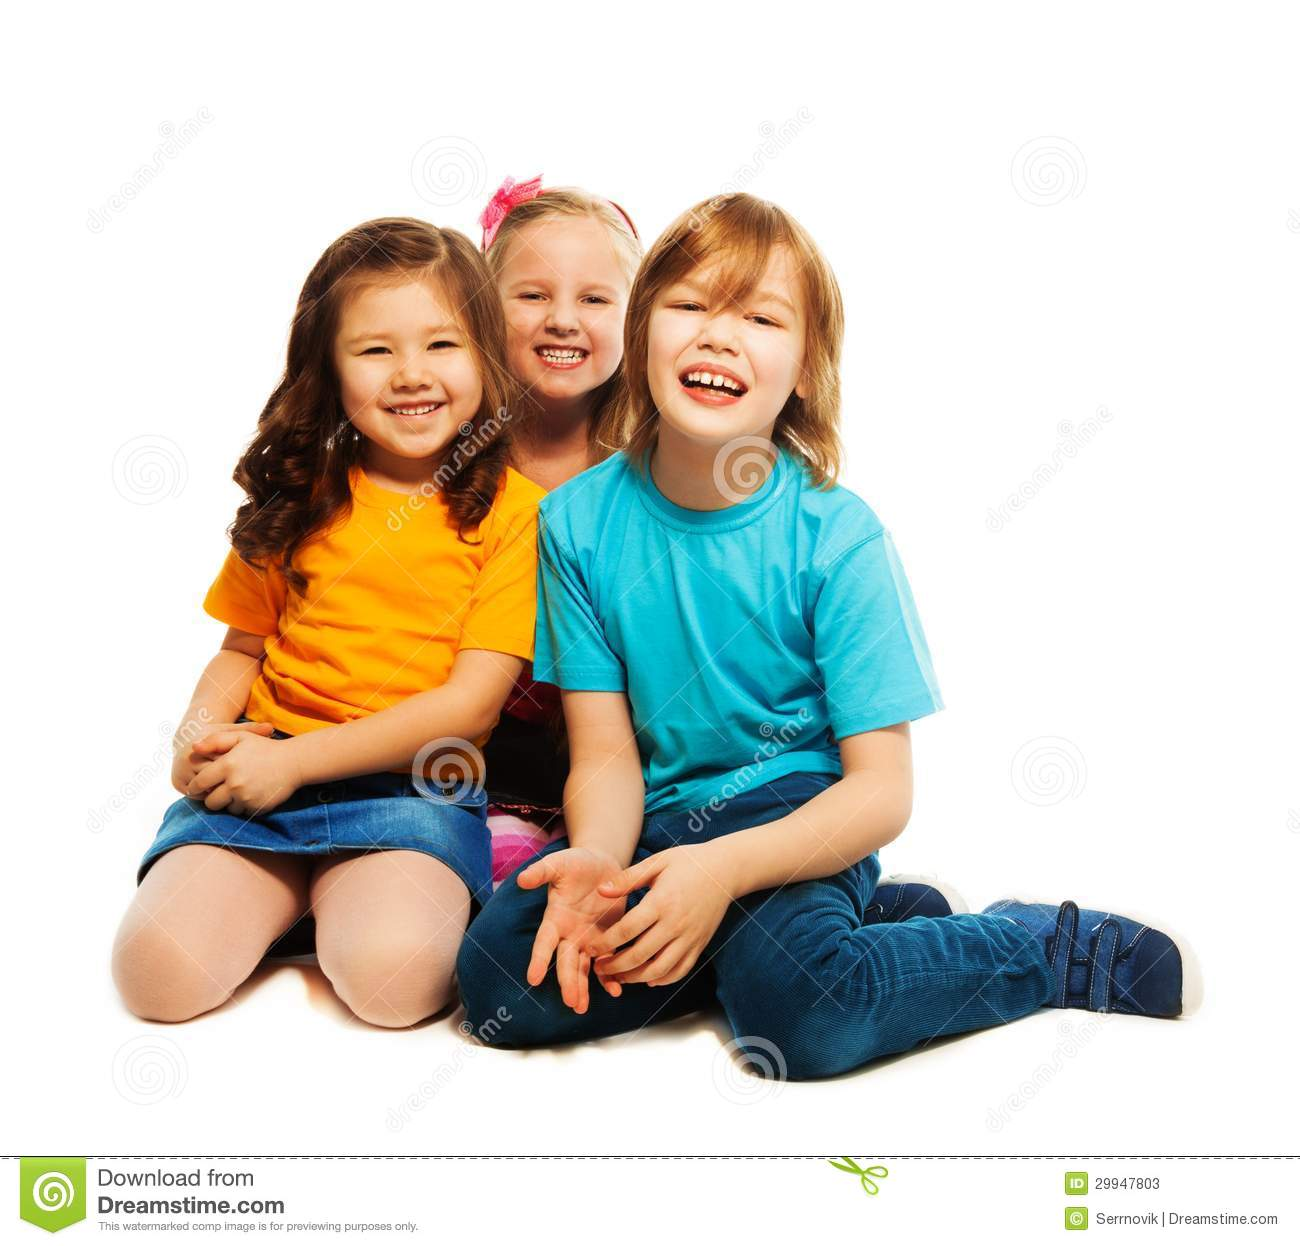 Three Best Friends Stock Image. Image Of Lifestyle, Kids